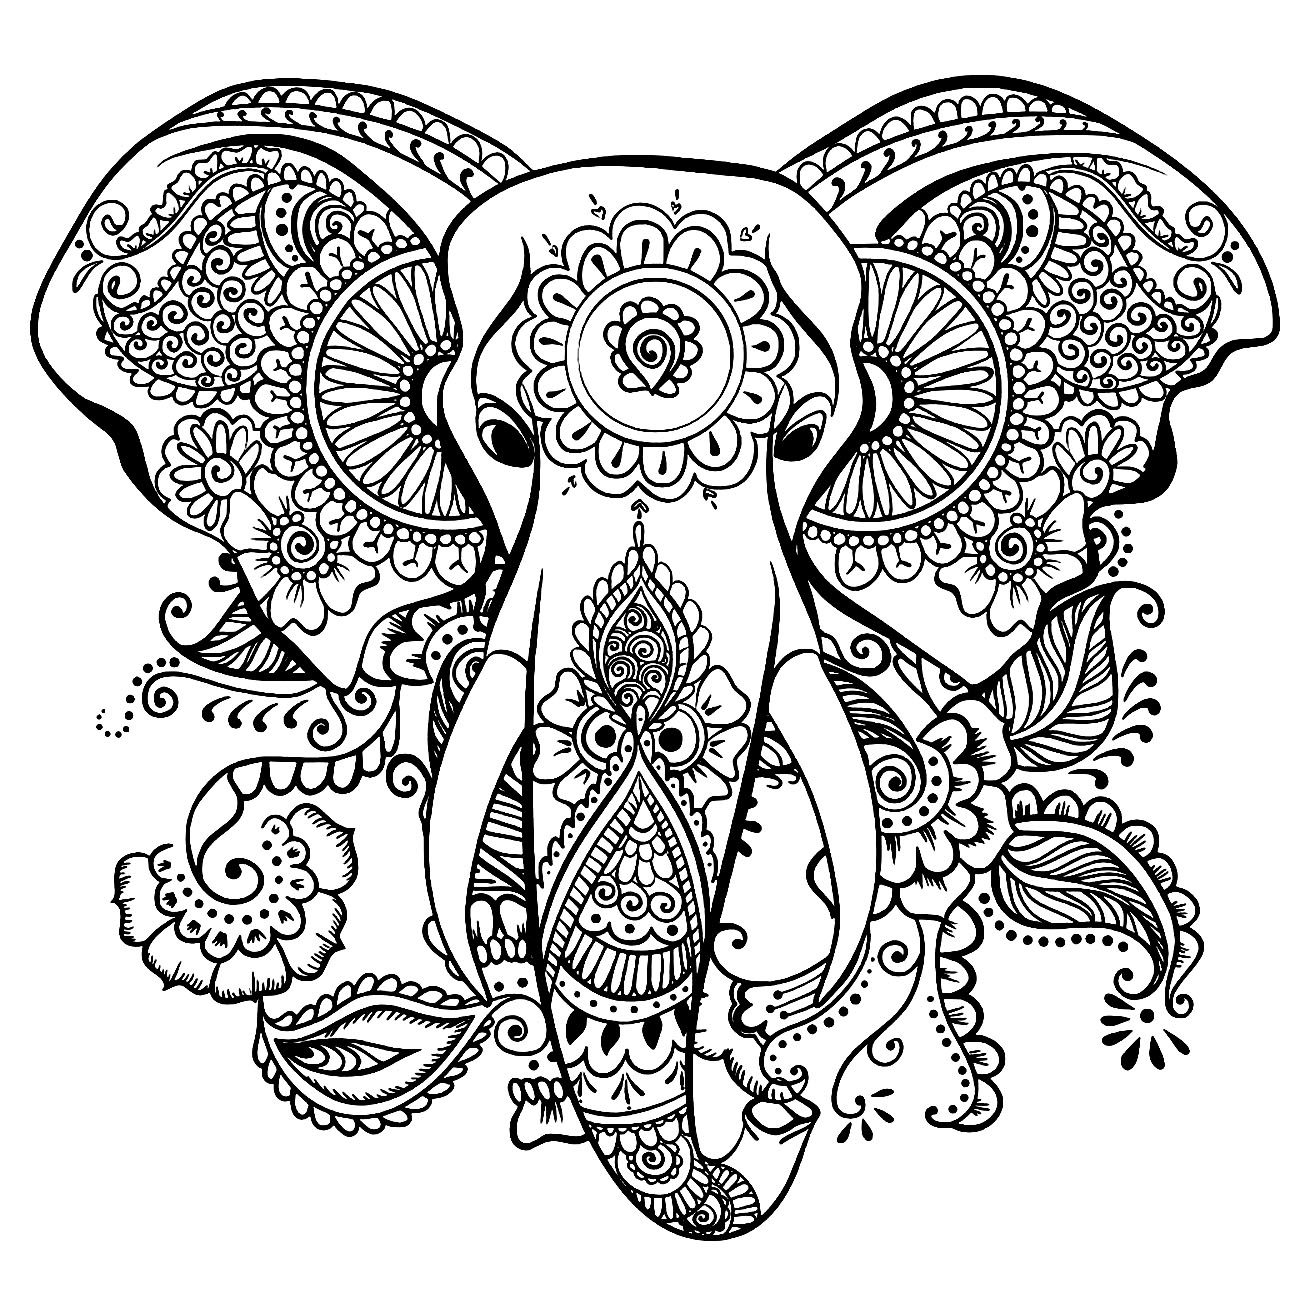 elephant color pages elephants free to color for children elephants kids pages elephant color